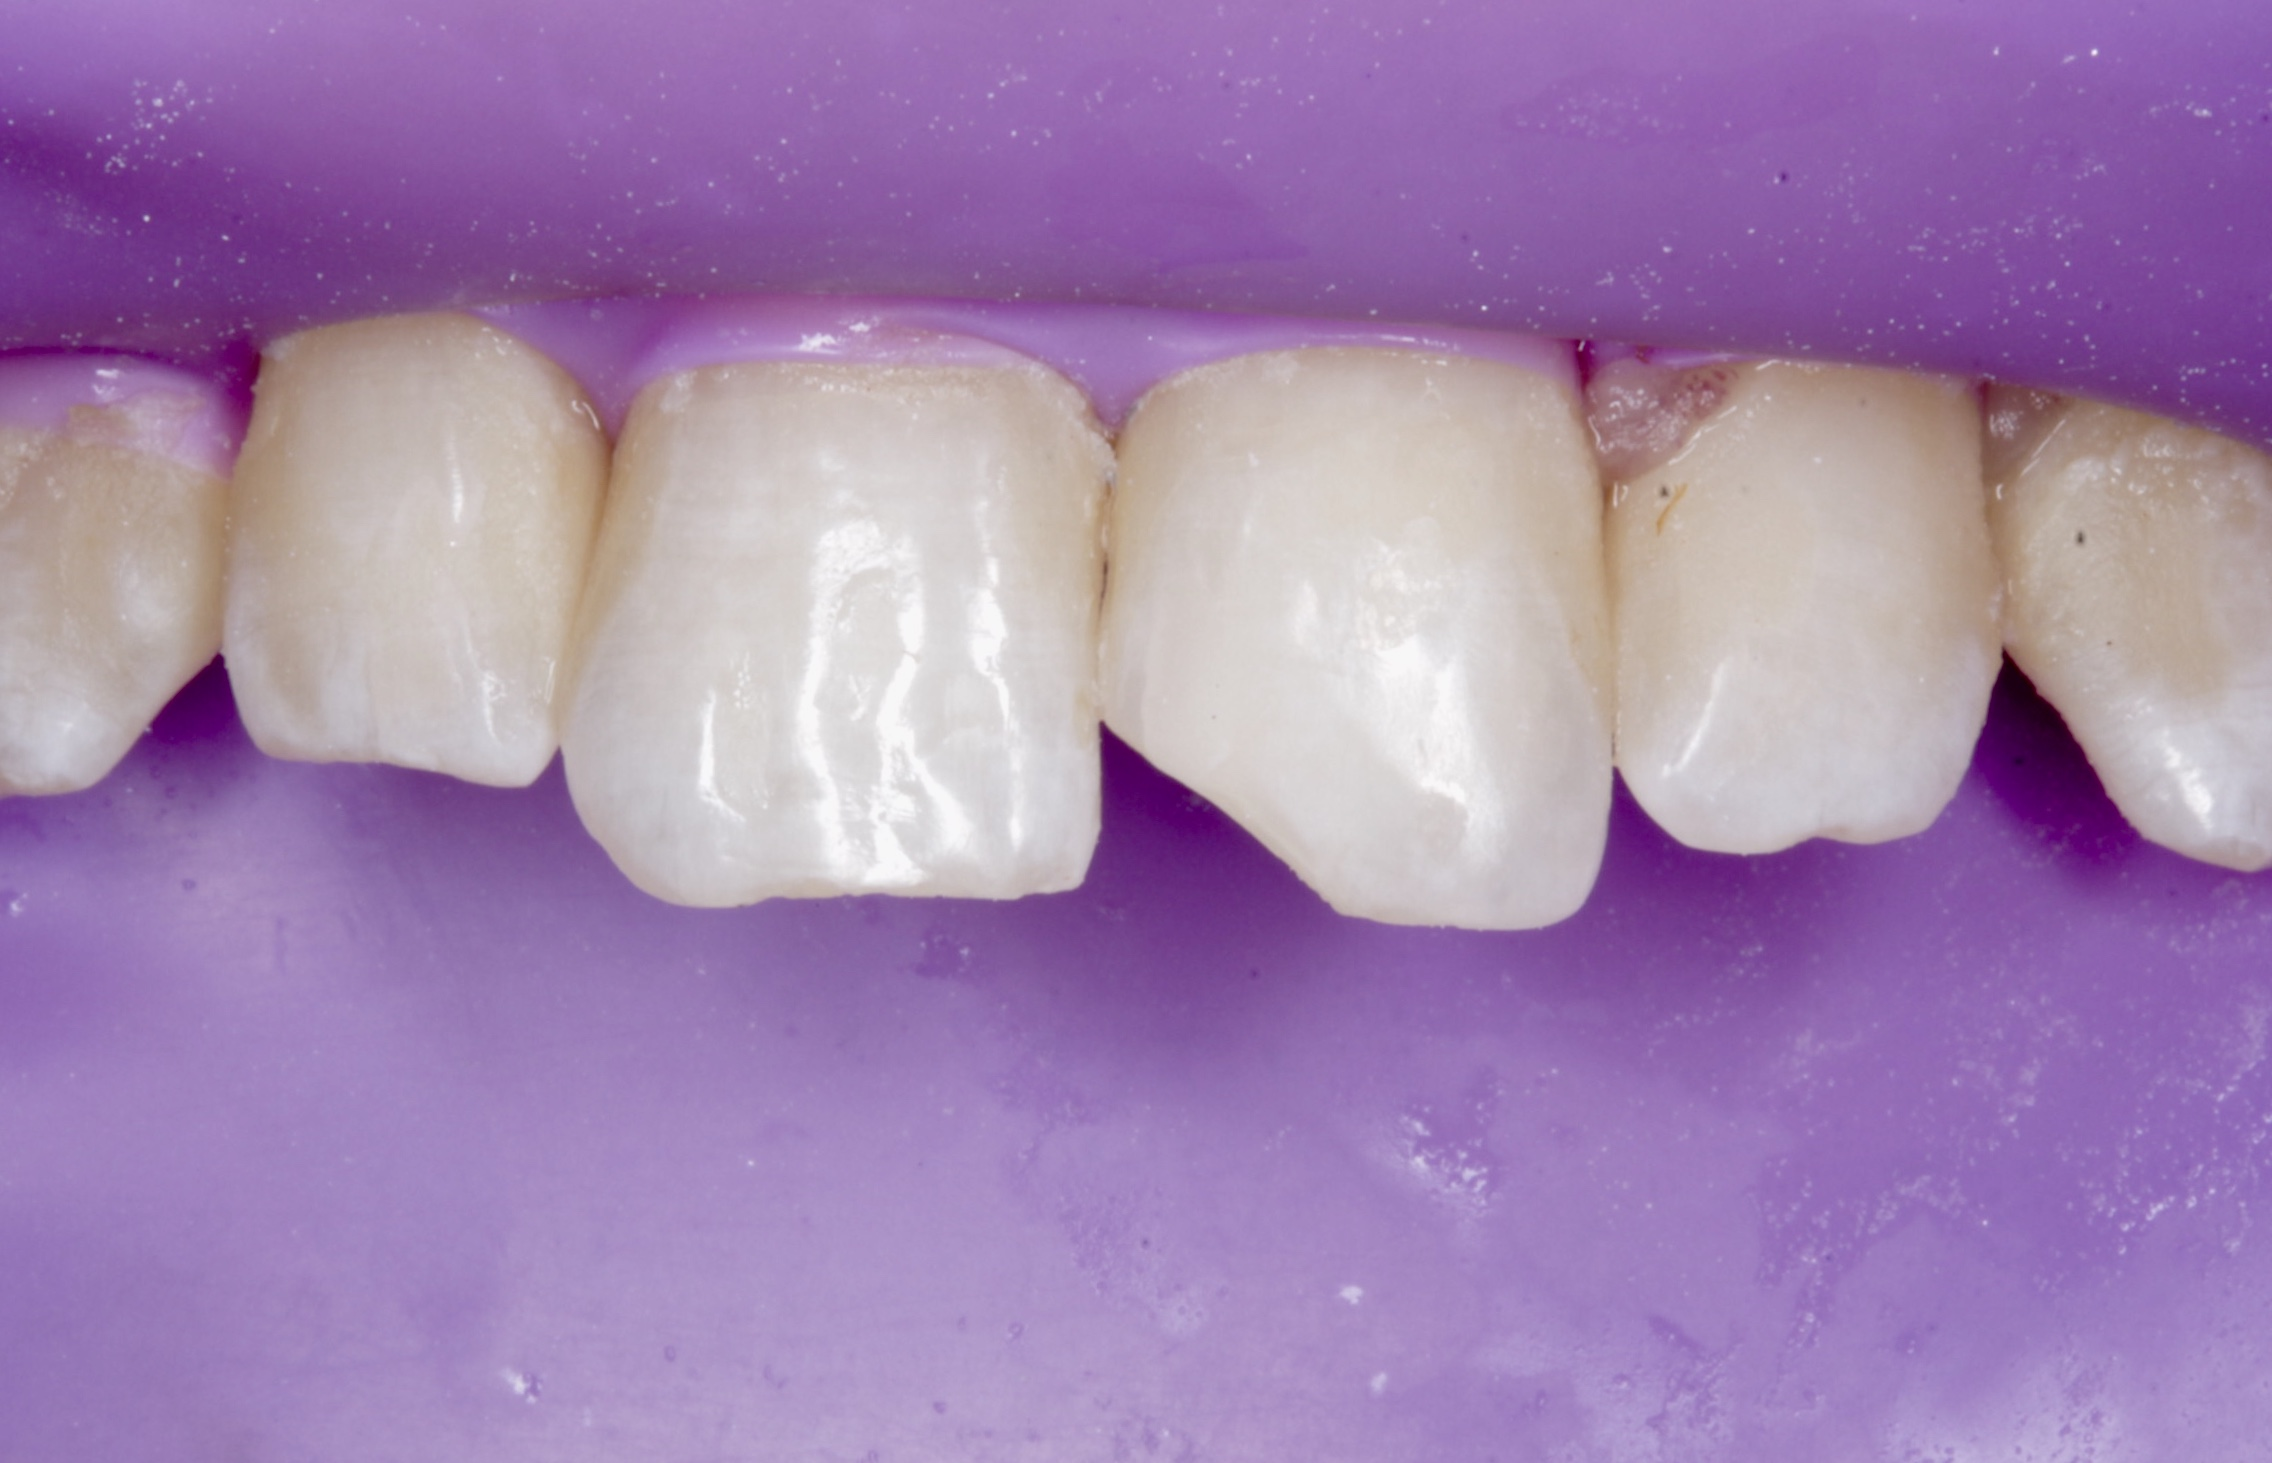 Rubber dam isolation - it is the best way of achieving a dry field which would help in obtaining an optimum bond strength of composite to enamel.